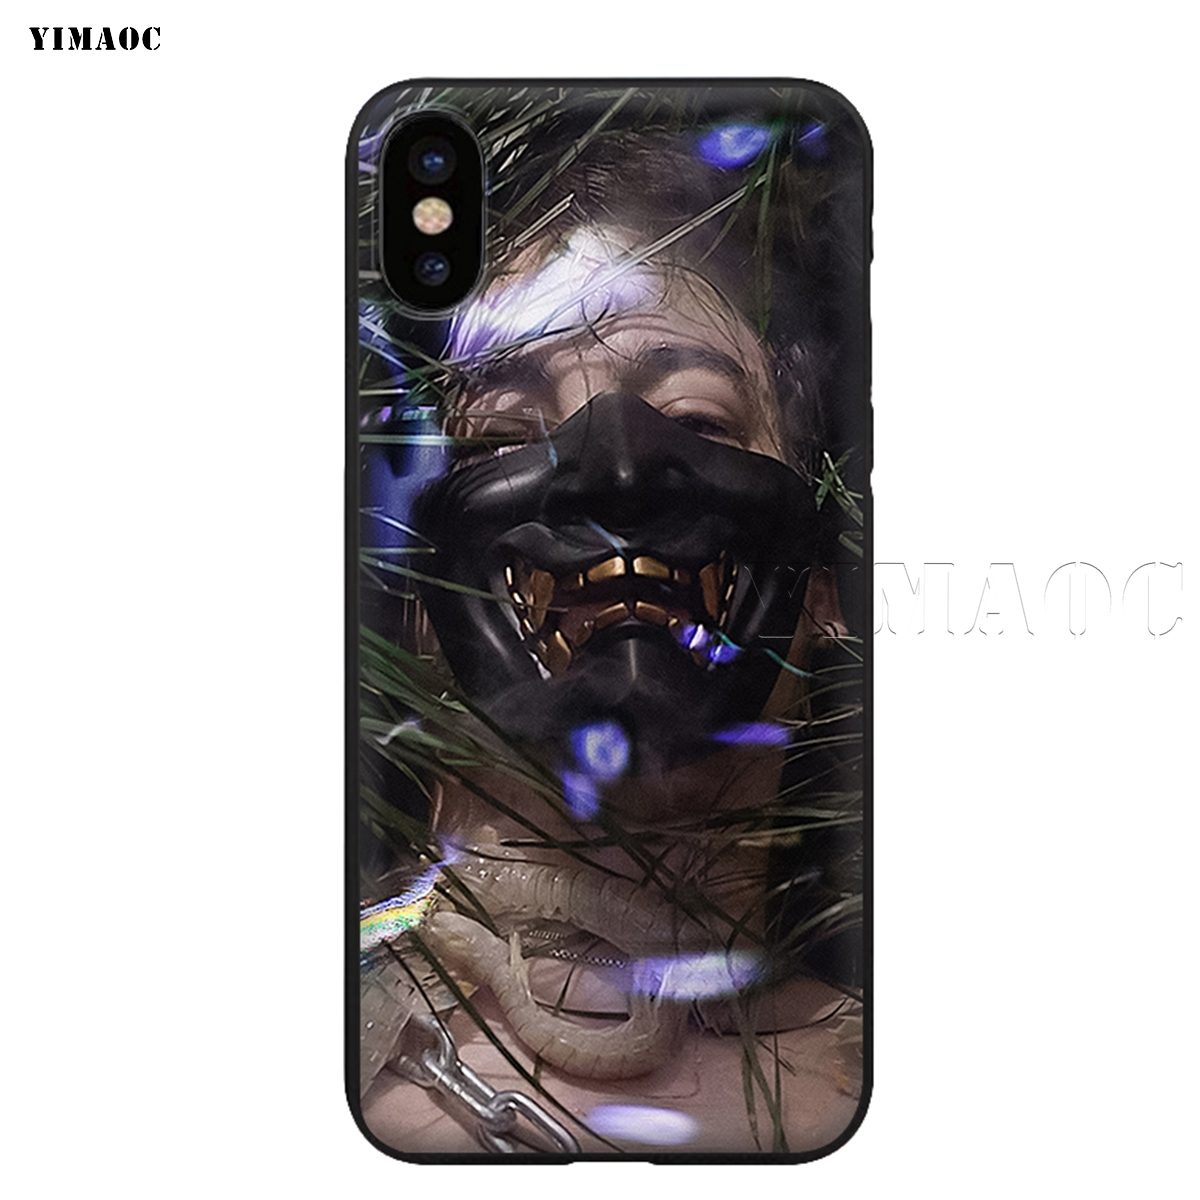 YIMAOC George Miller Joji Soft Silicone Case for iPhone XS Max XR X 8 7 6 6S Plus 5 5s se